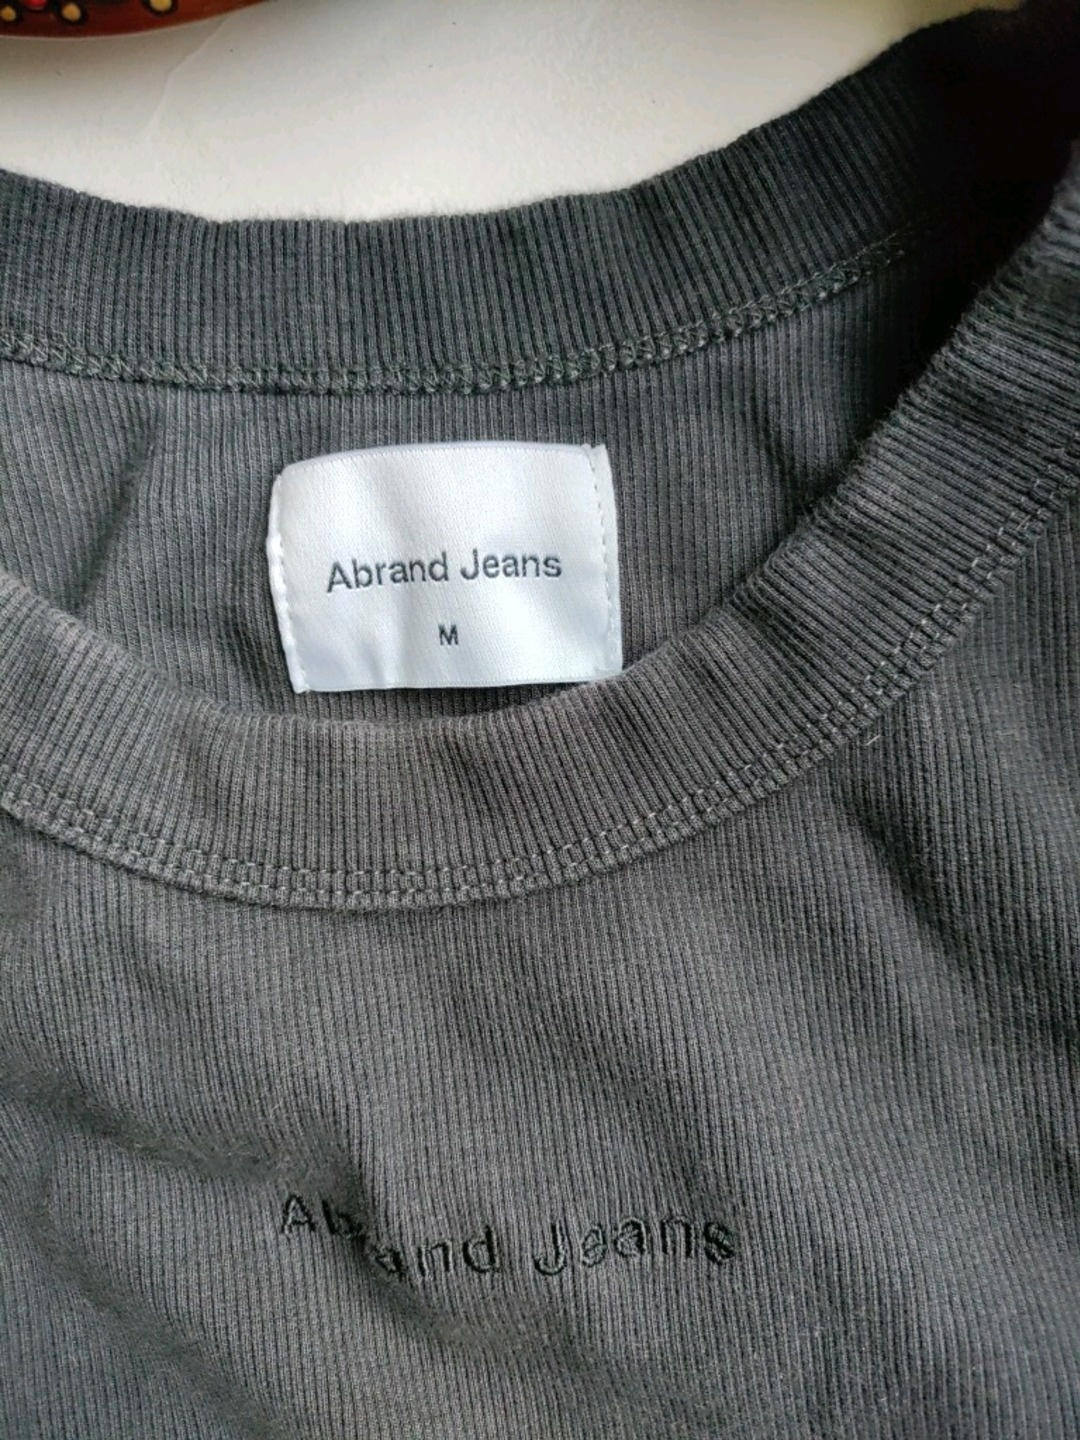 Women's tops & t-shirts - ABRAND JEANS photo 2